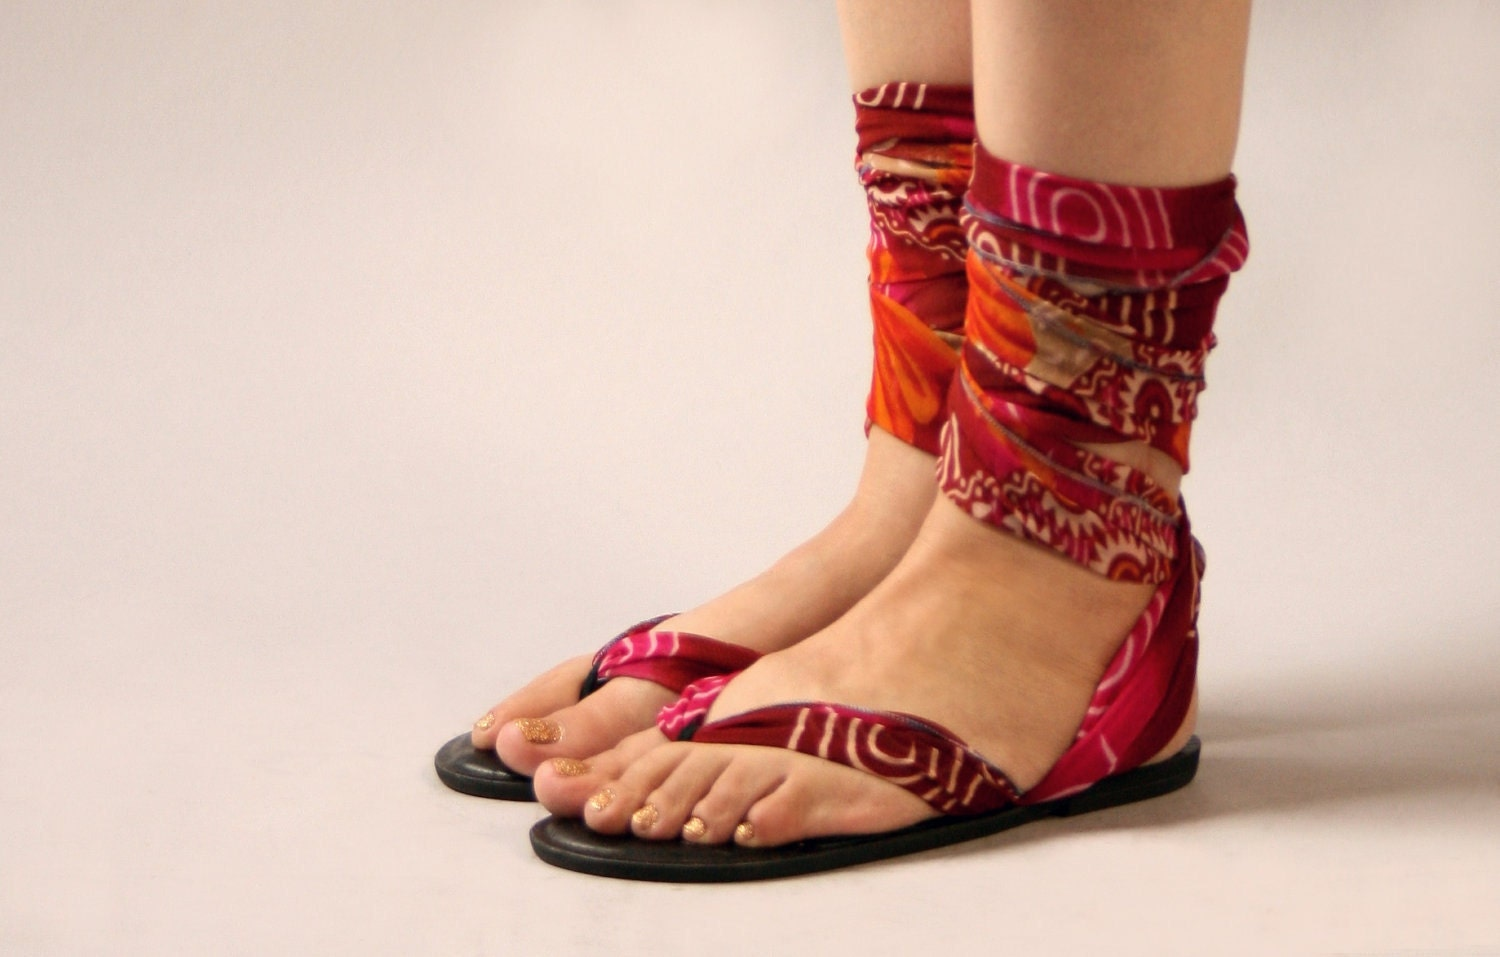 Size 9 - Moped by Mohop Handmade Interchangeable Sandals - Thong Style